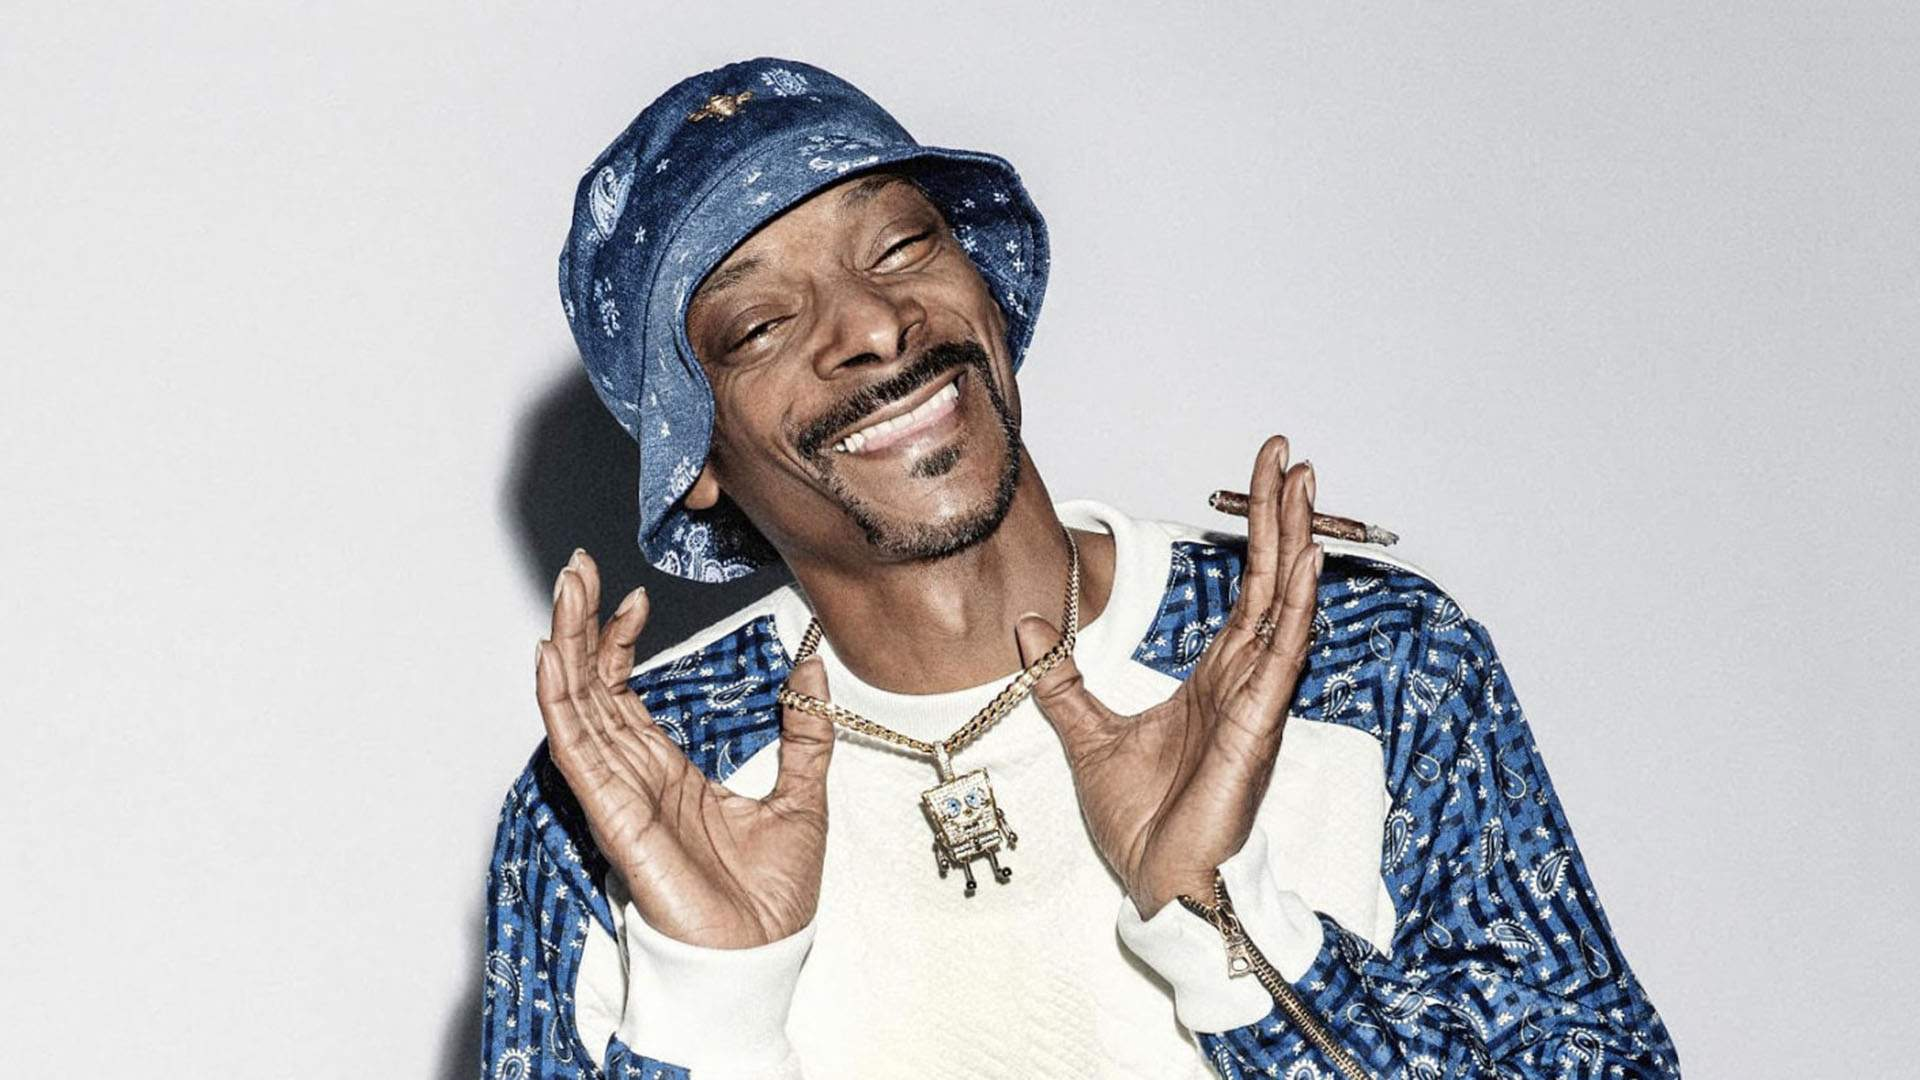 Snoop Dogg Is Dropping His Arena Tour Into Australia in 2022